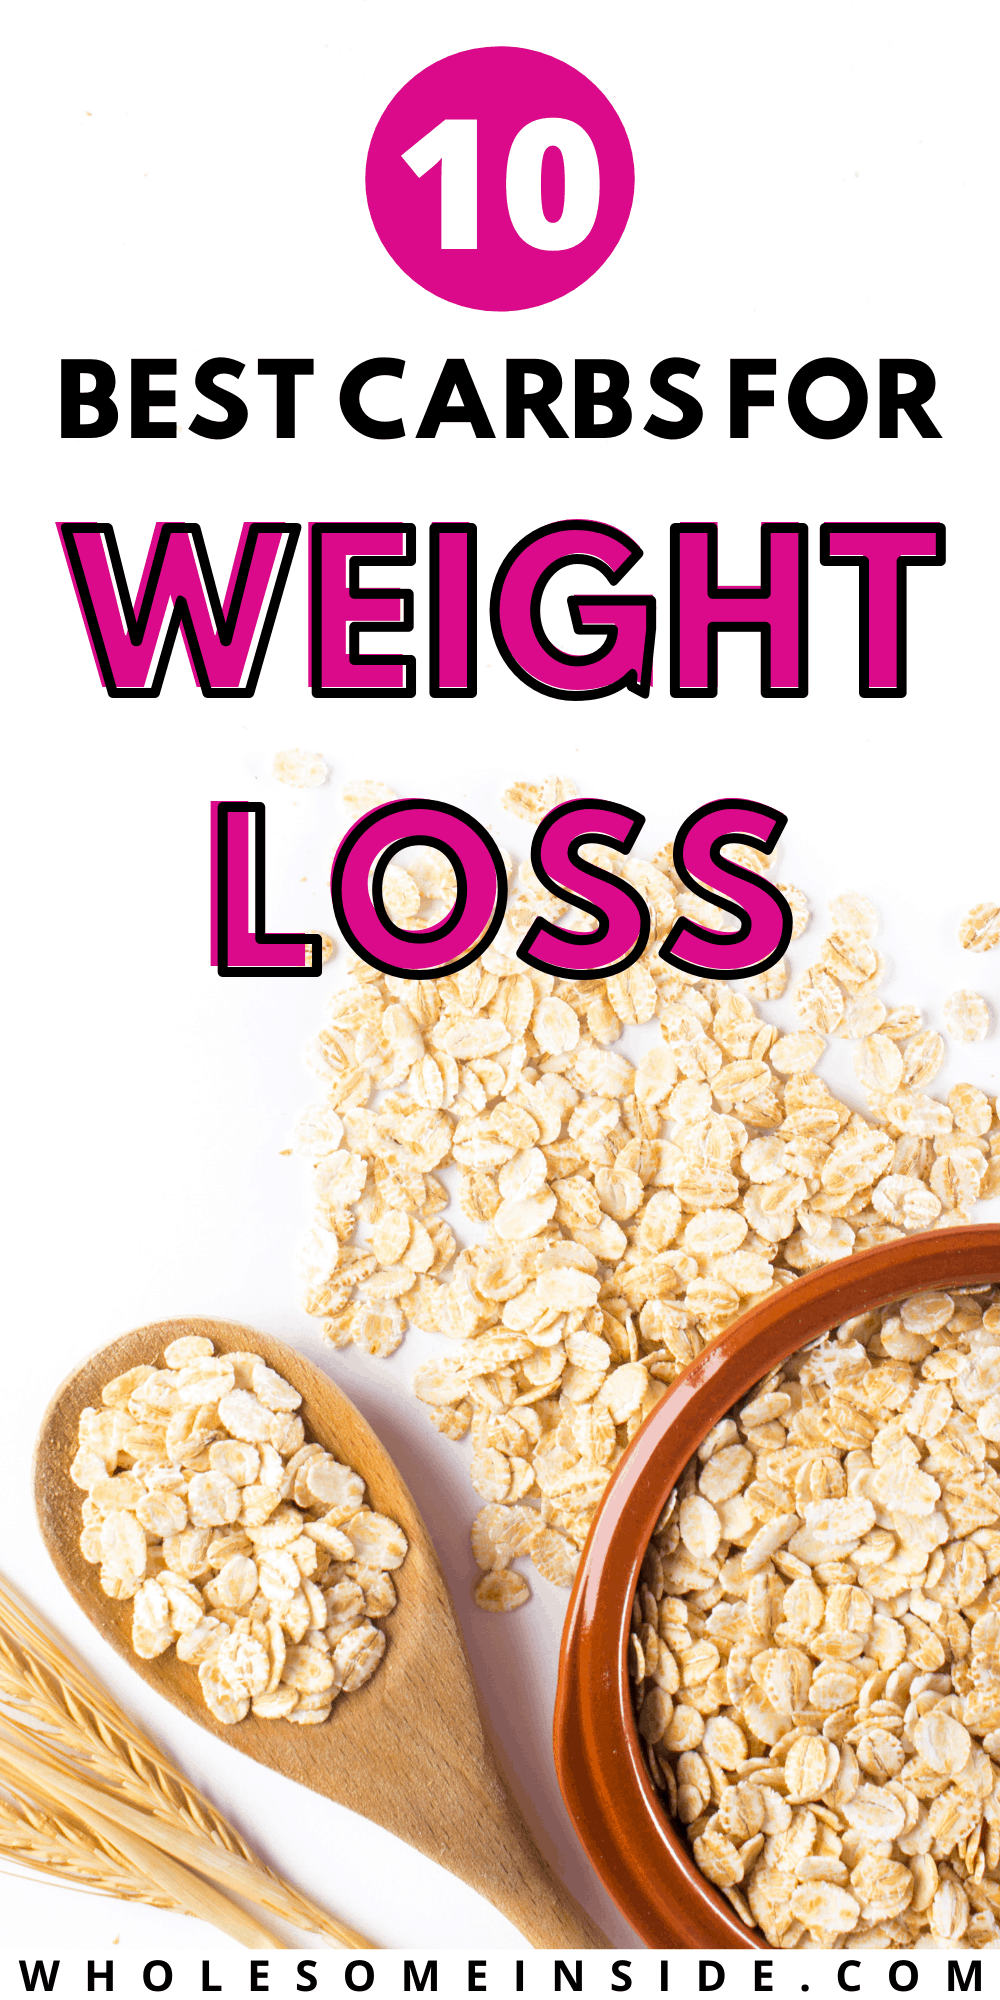 The Best Carbs for Weight Loss - Wholesome Inside